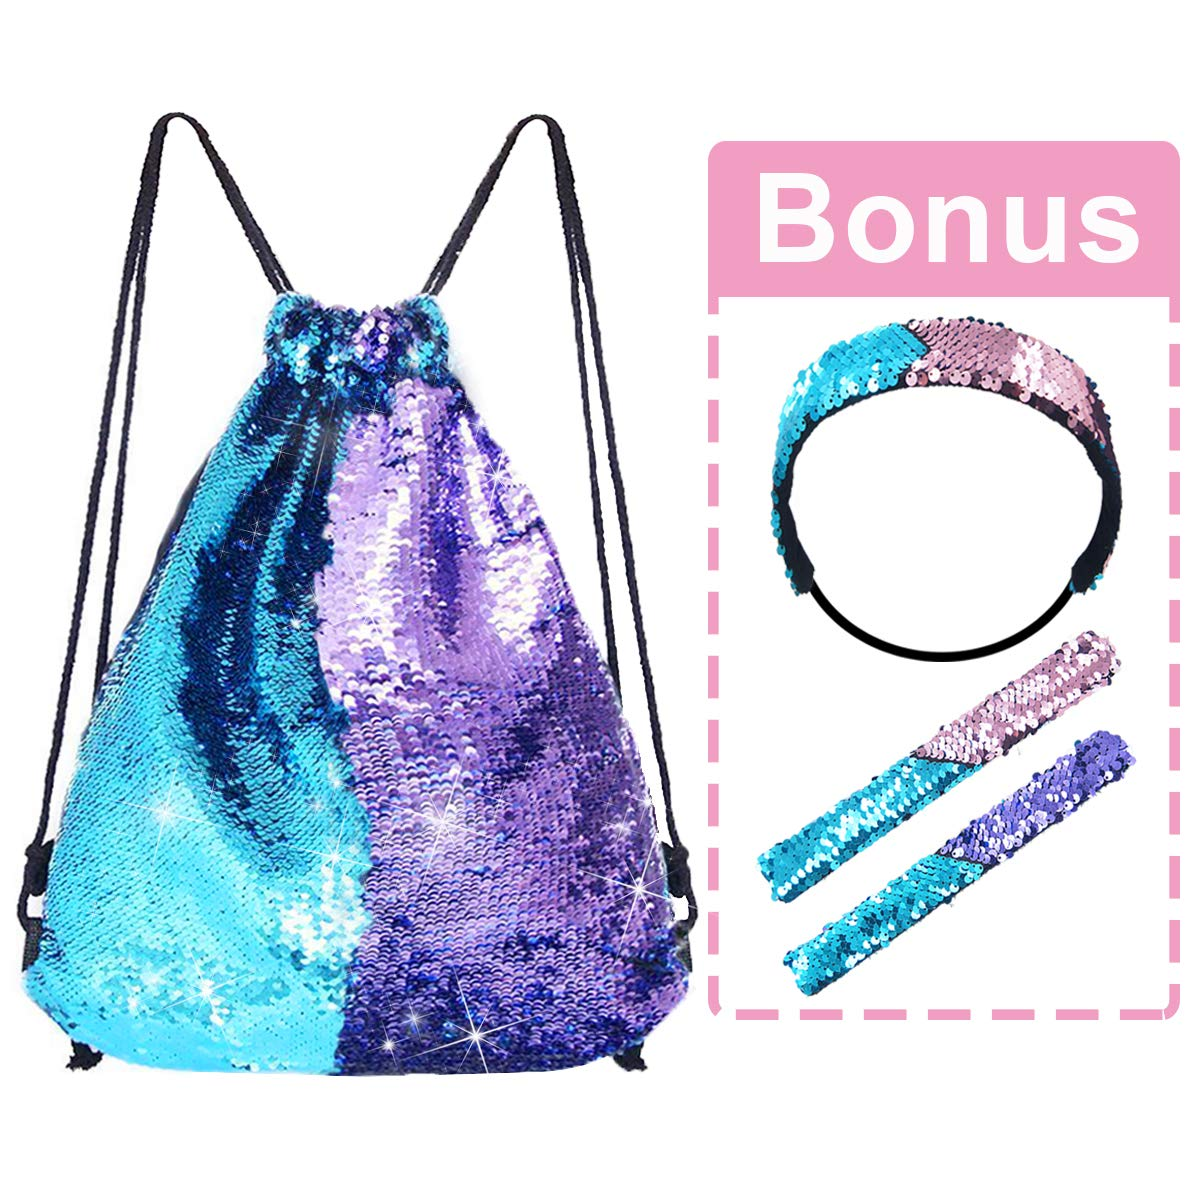 Pawliss Mermaid Reversible Sequin Drawstring Backpack with Bonus Slap Bracelet & Headband Set, Magic Glittering Dance Bag, Blue & Purple, 4pcs by Pawliss